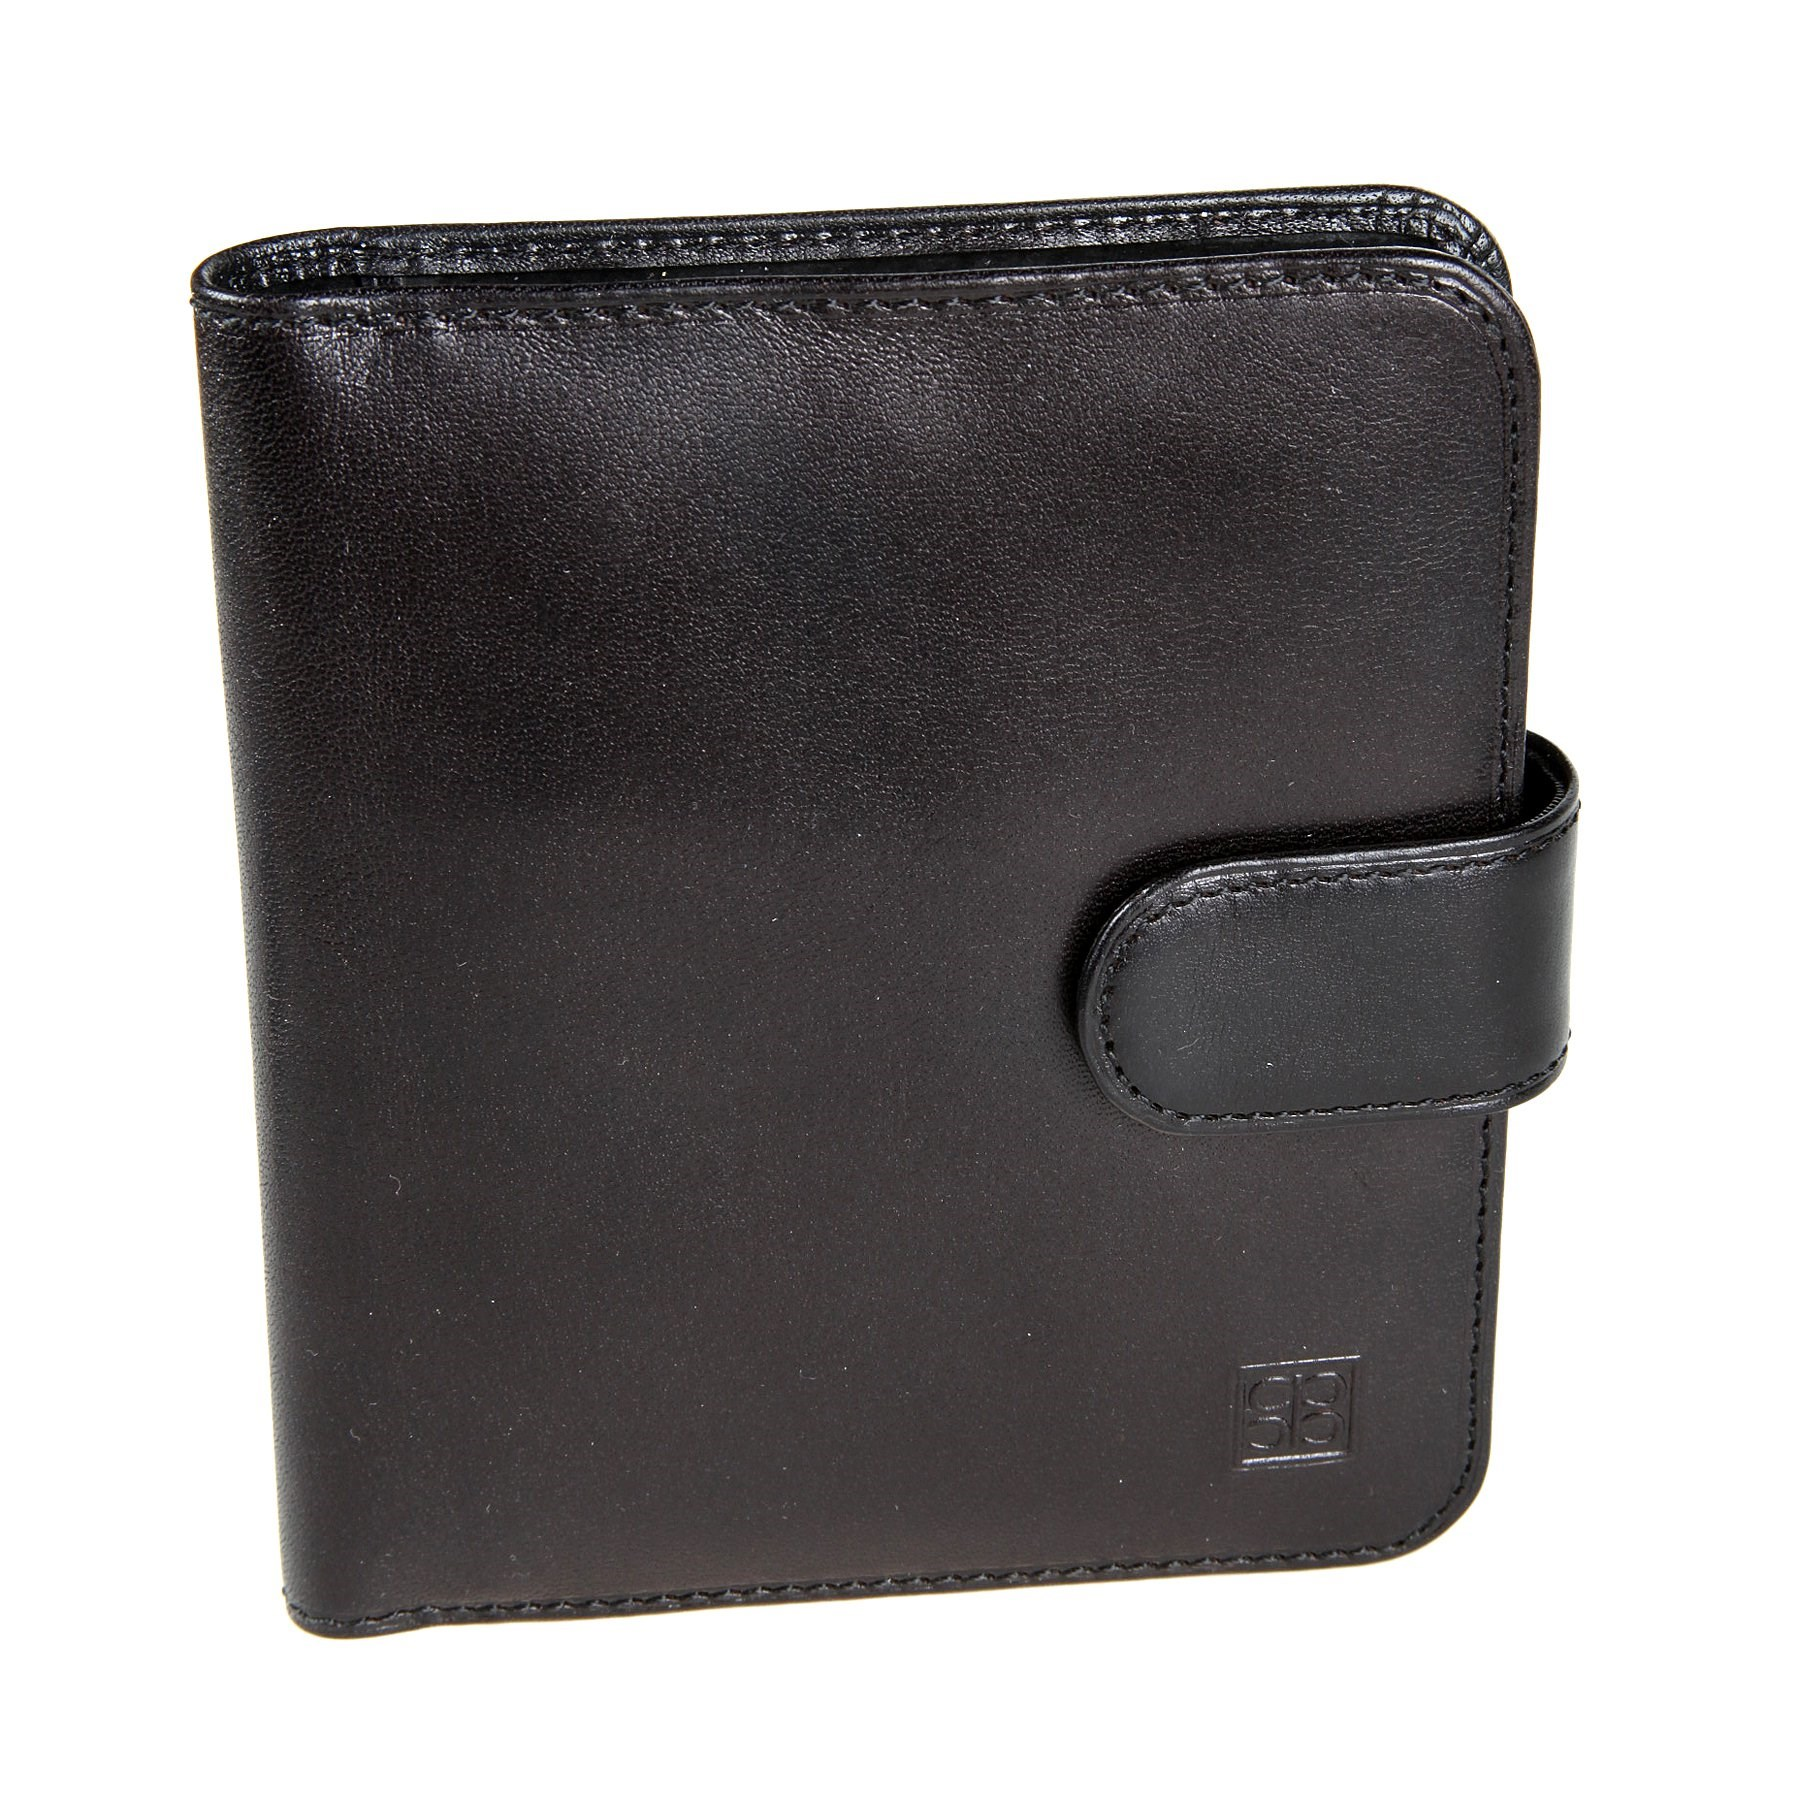 Business Card Holder Sergio Belotti 2612 Milano black genuine leather business vintage men s money purse short solid wallets dollar price male carteira masculina with card holders